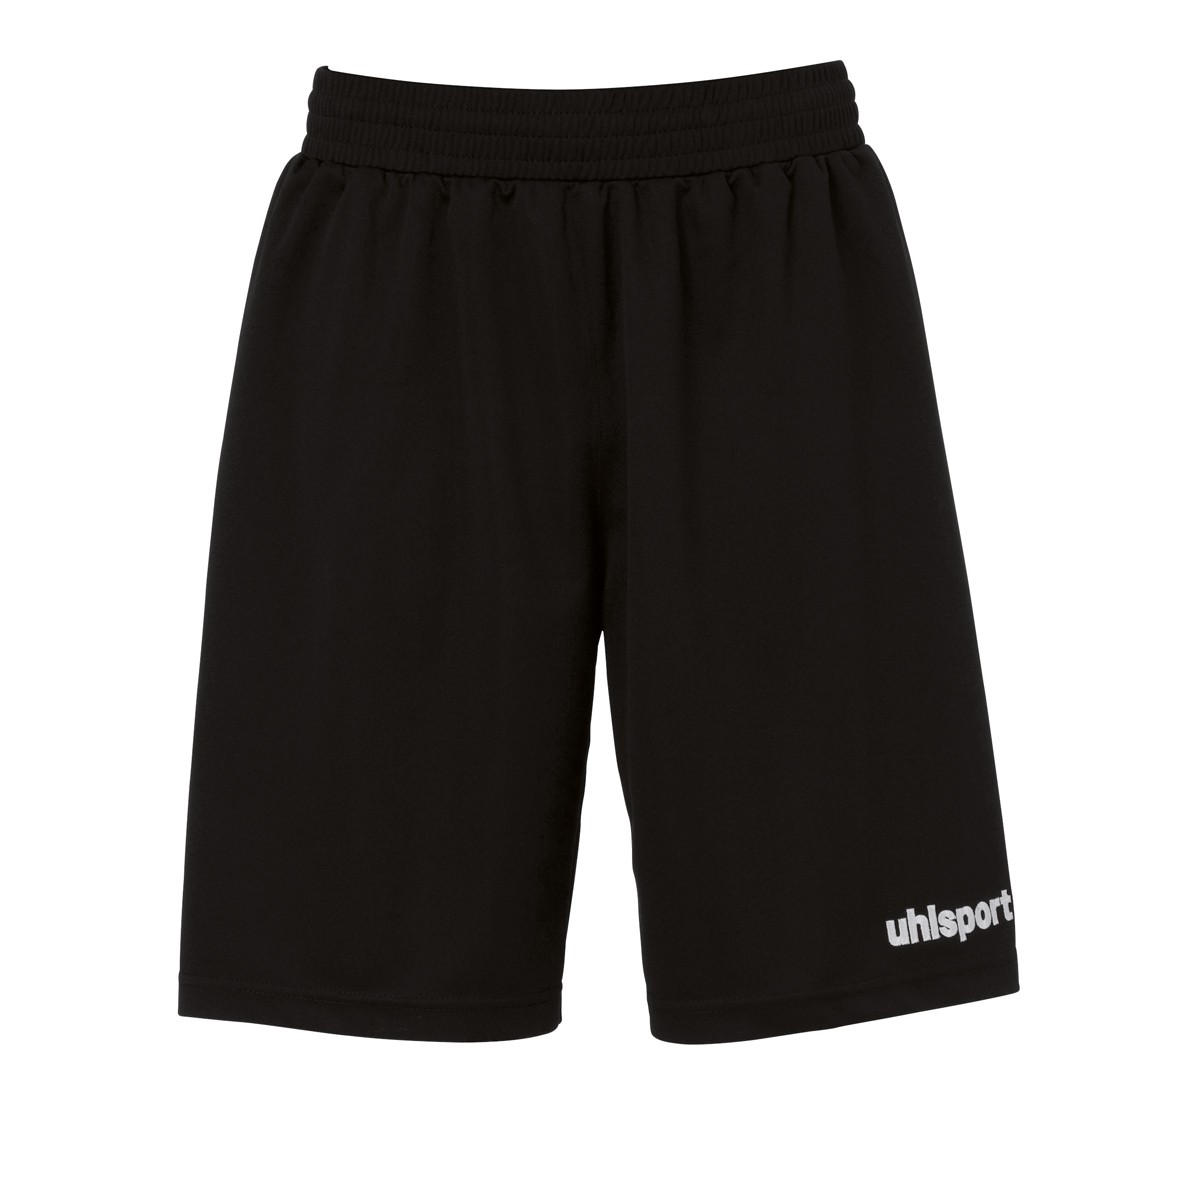 Uhlsport standard goalkeeper shorts